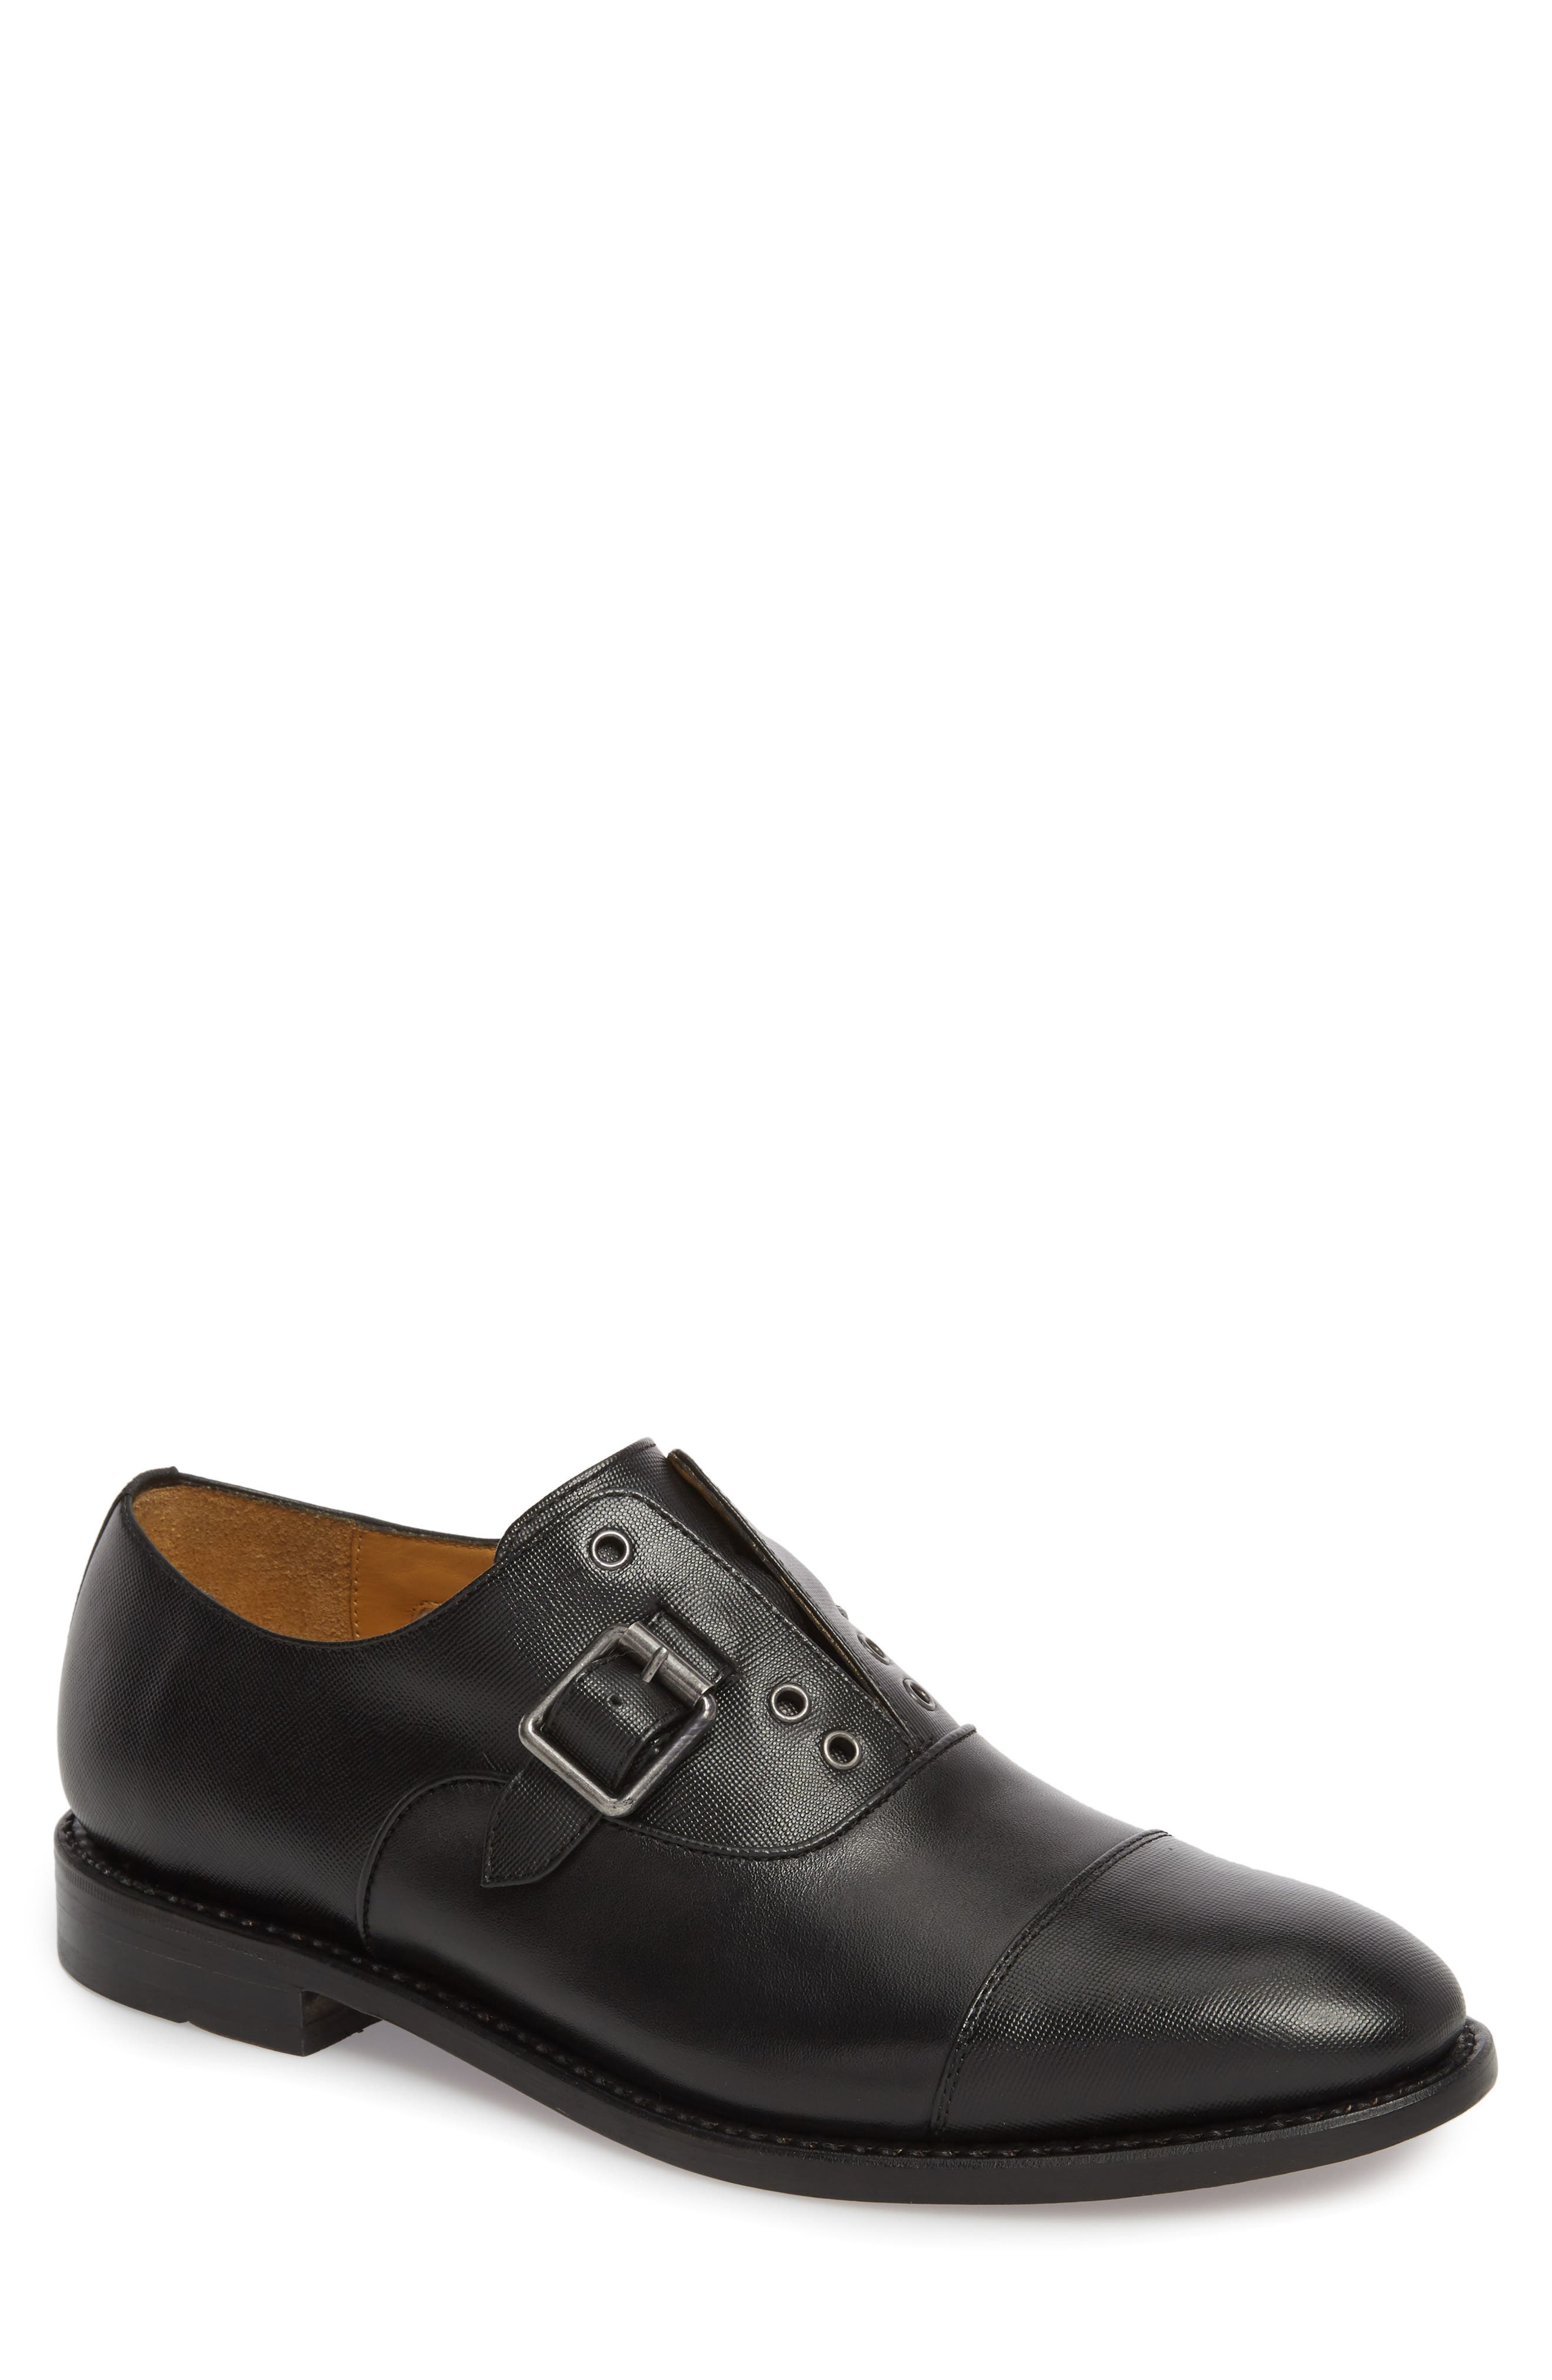 Brandon Cap Toe Oxford,                         Main,                         color, 001